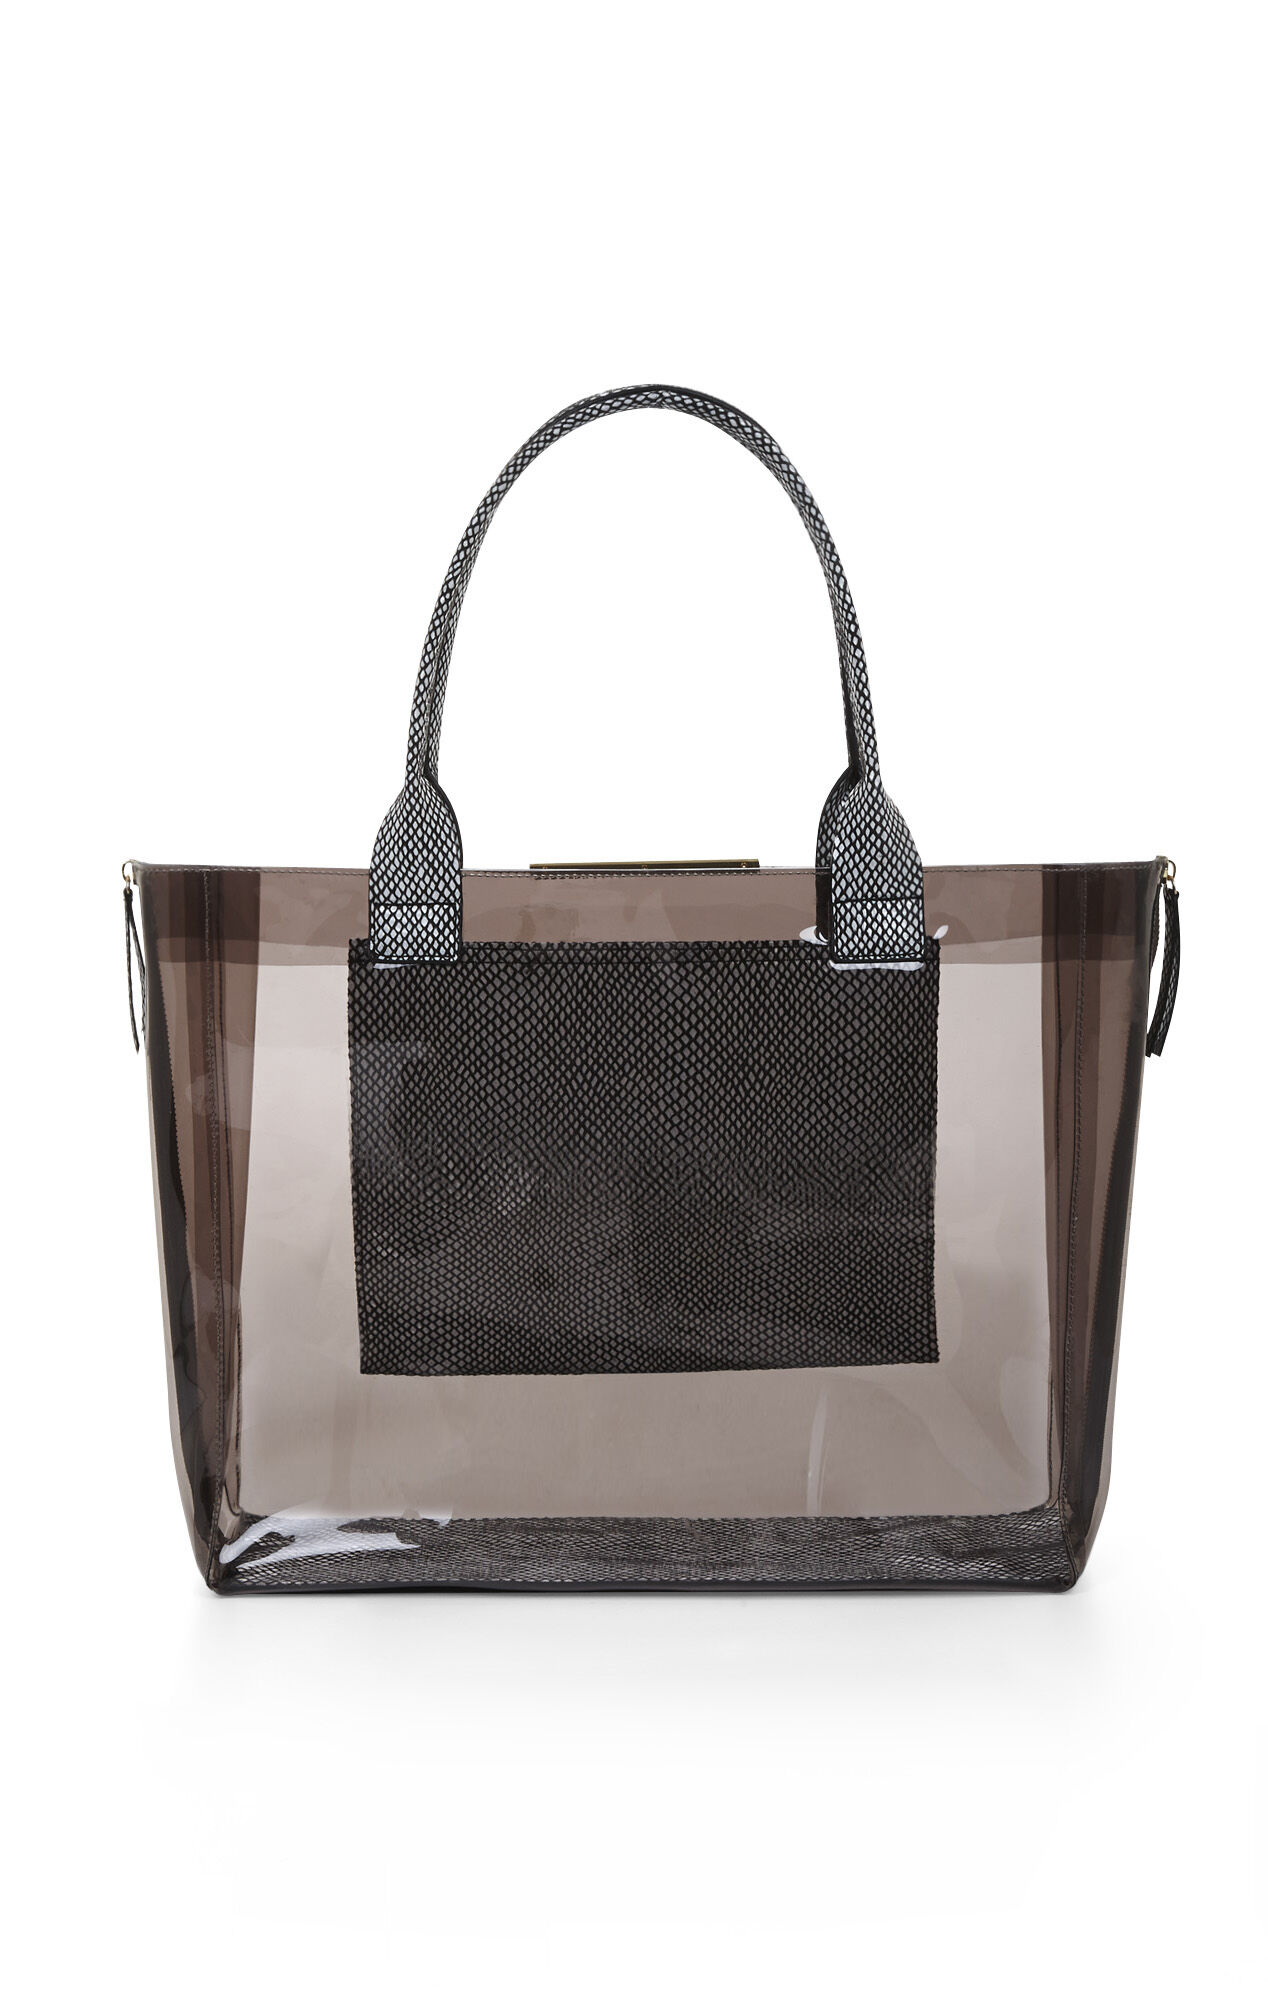 Carly Zipper Tote